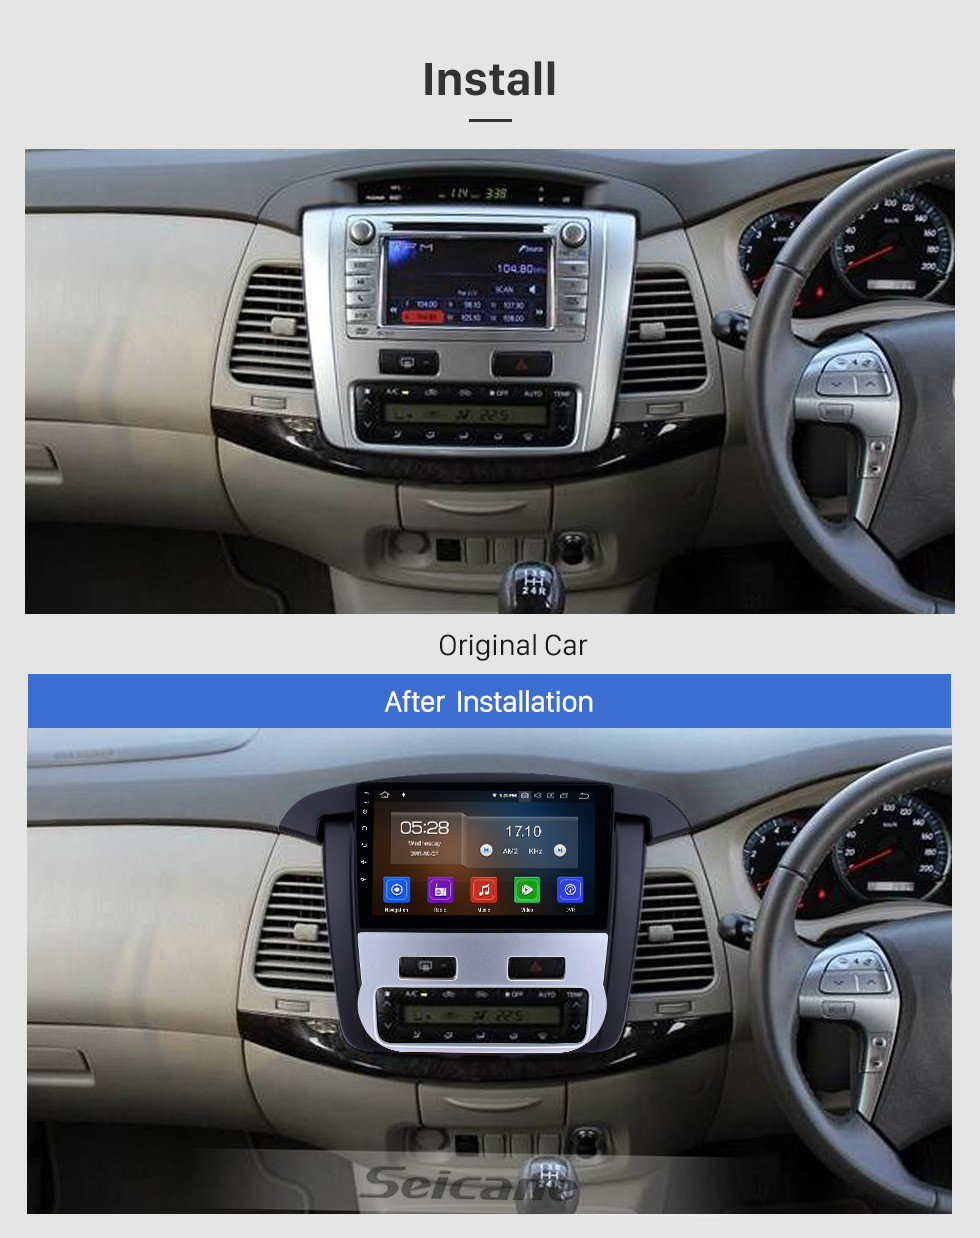 Seicane 2012 2013 2014 Toyota innova Auto A/C 9 inch Android 10.0 Radio HD Touchscreen GPS Navigation Stereo with USB Carplay WIFI Bluetooth support DVR 4G SWC